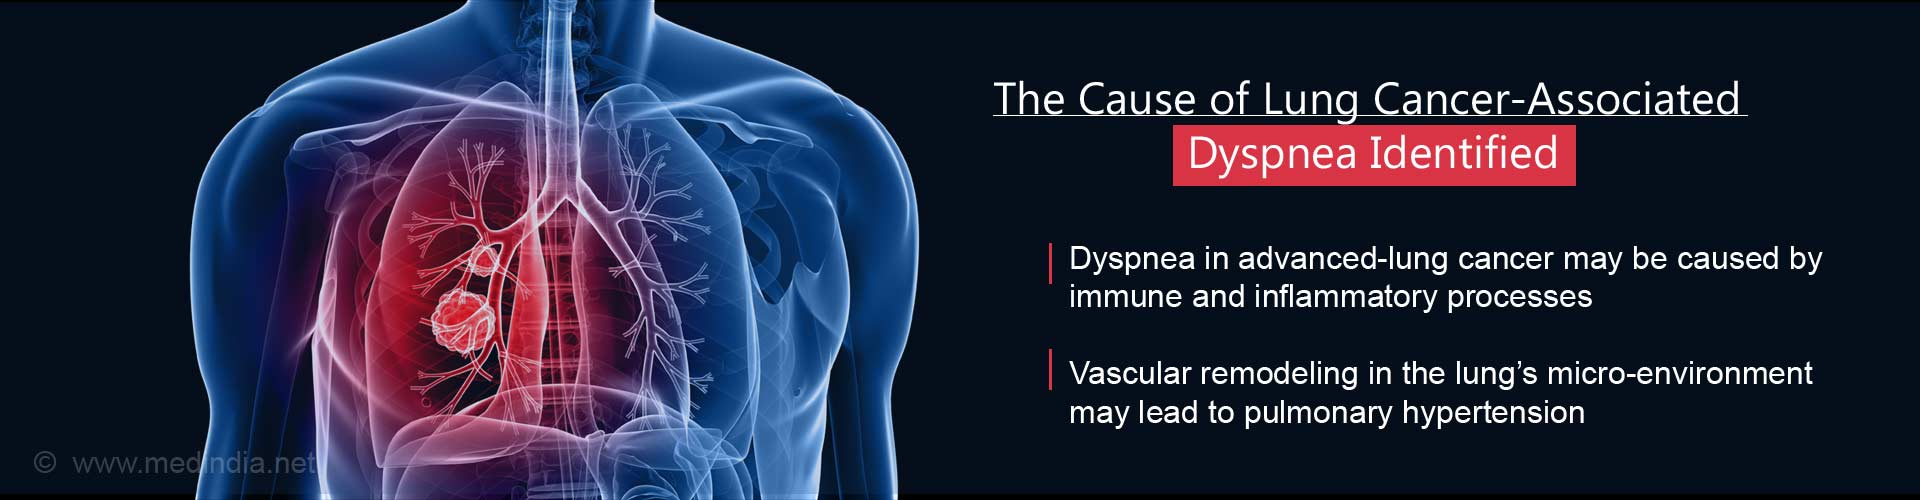 The Cause of Lung Cancer-Associated Dyspnea Identified